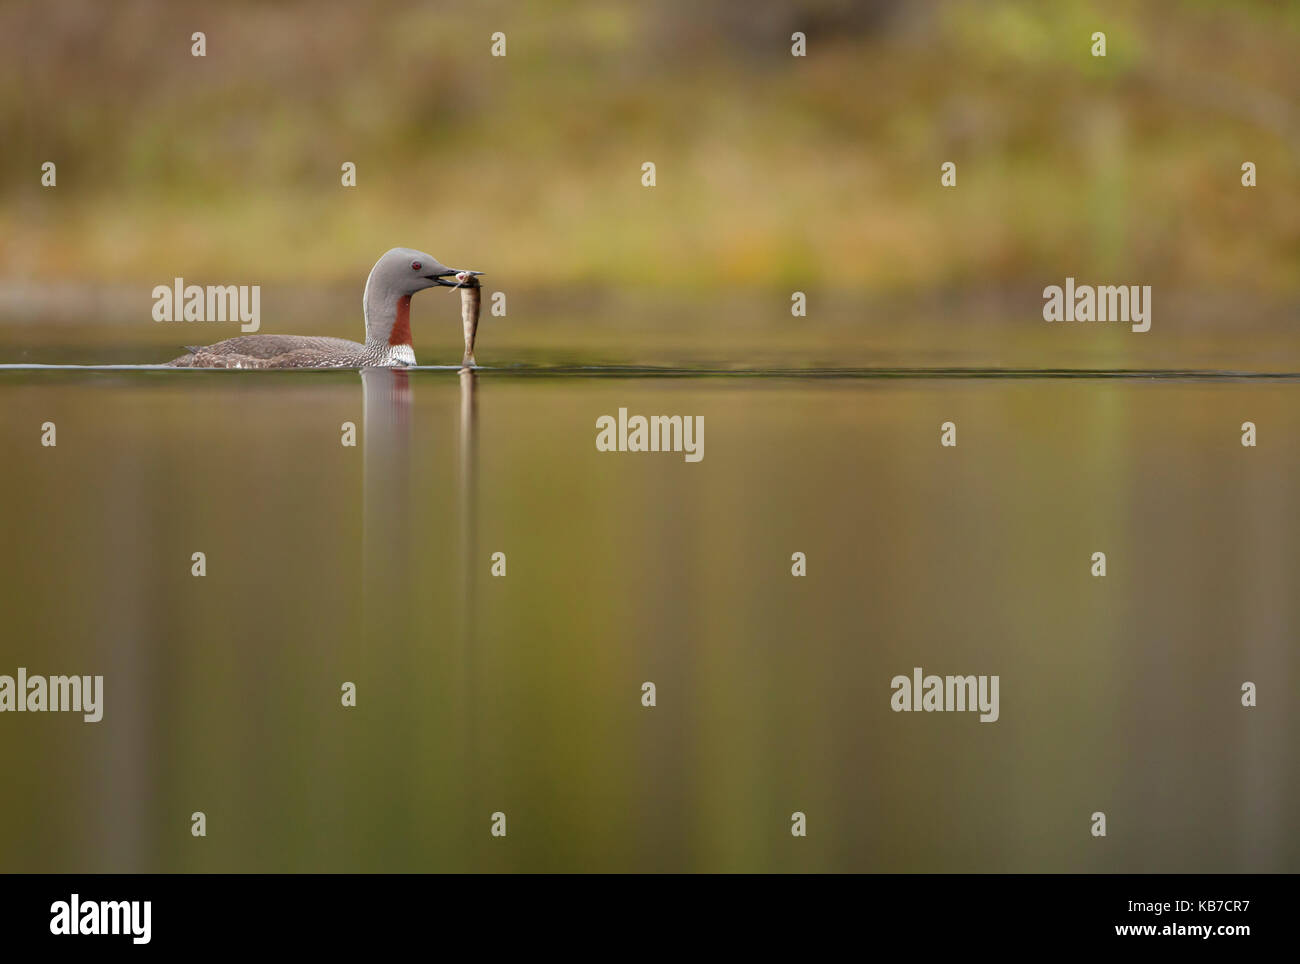 Red-throated Loon (Gavia stellata) with a caught fish, Norway, Nord Trondelag, Lierne - Stock Image